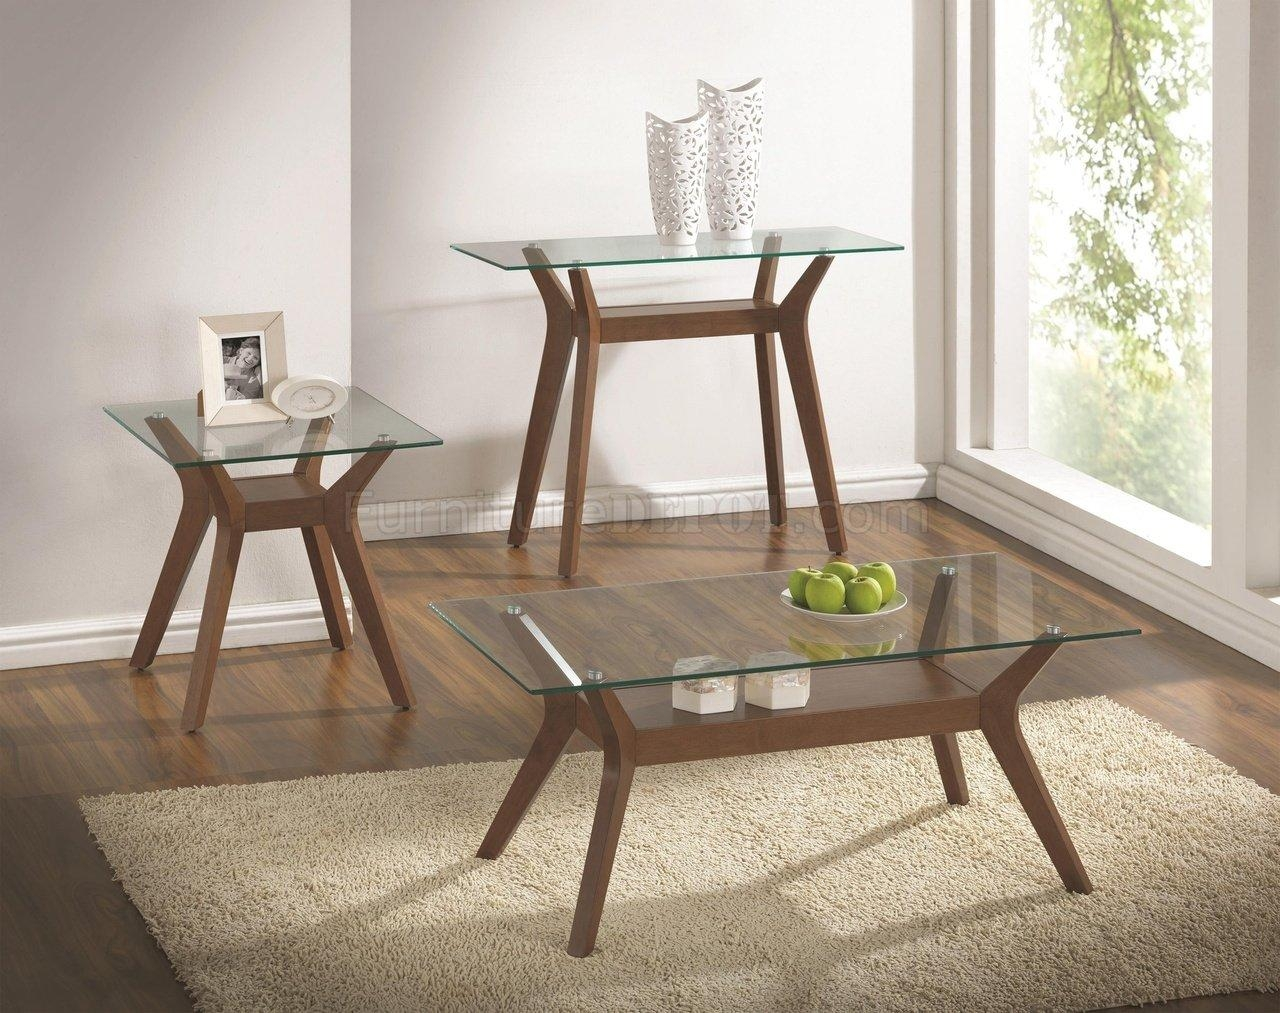 704168 3Pc Coffee Table Setcoaster W/optional Sofa Table Intended For Sofa Table With Chairs (View 14 of 20)